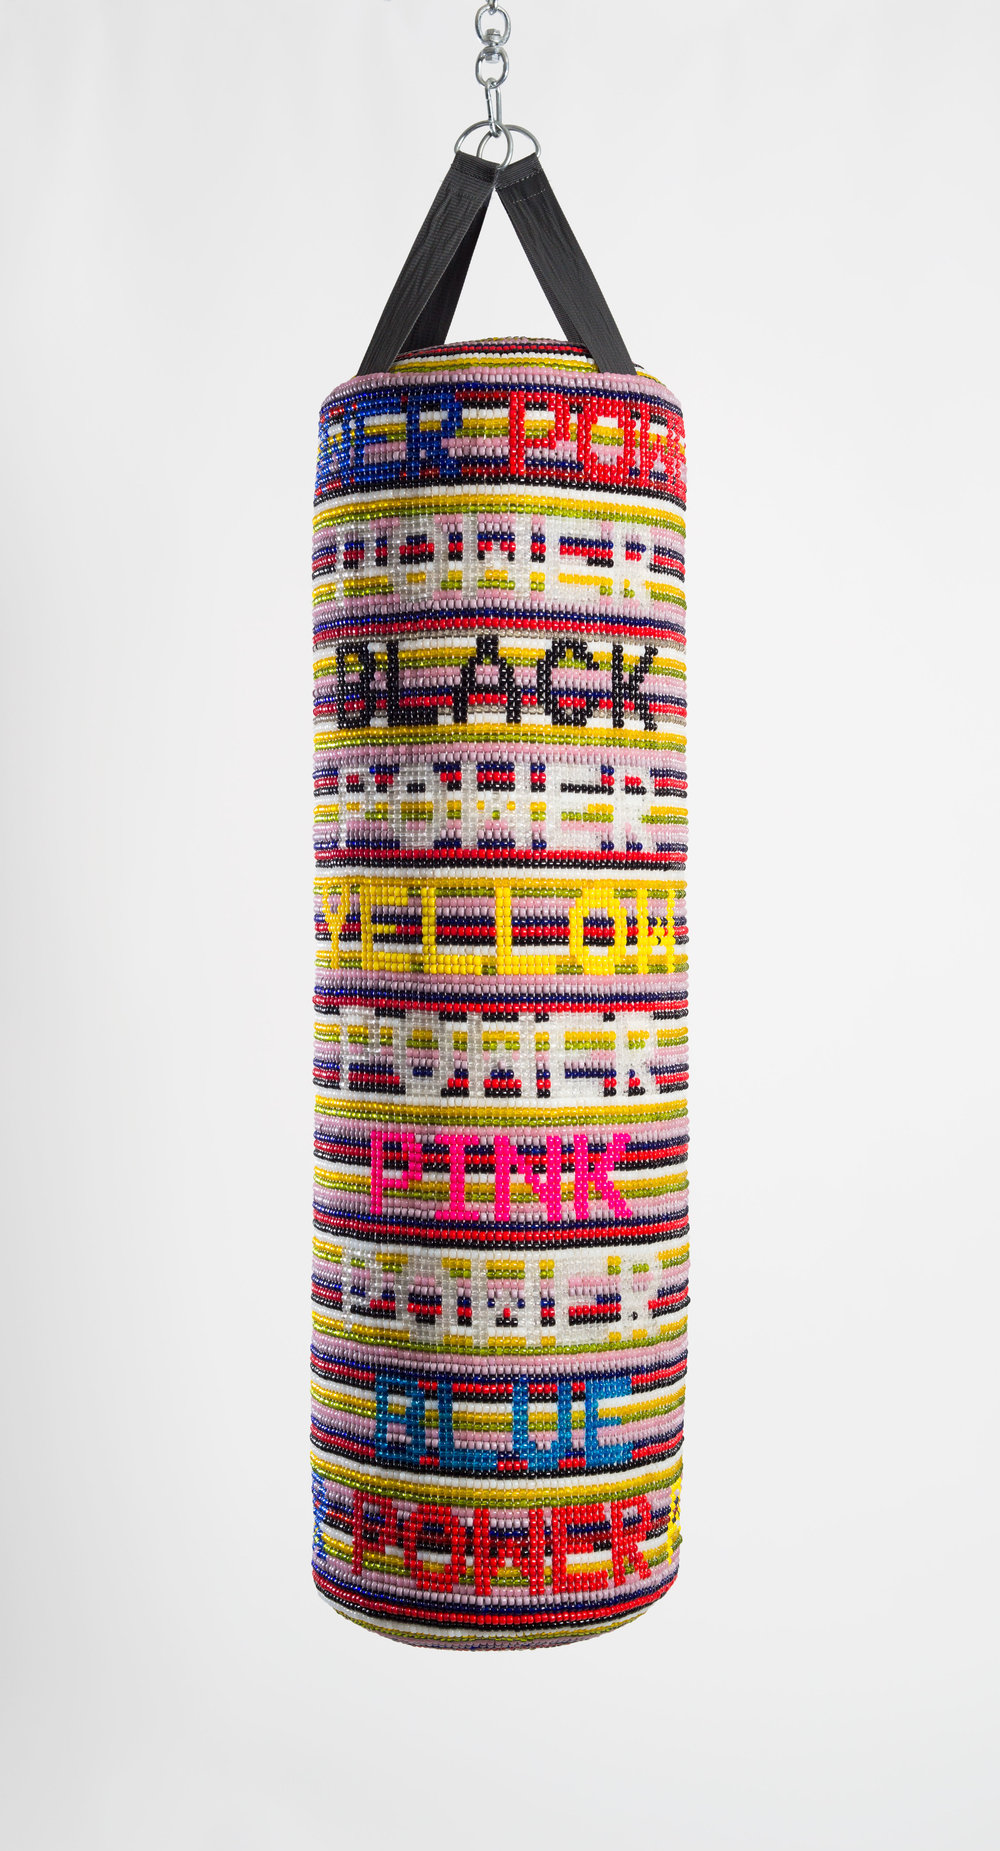 "Jeffrey Gibson. ""POWER POWER POWER"" (2017). Repurposed vinyl punching bag, glass beads, artificial sinew, acrylic felt.51 x 12 INCHES."